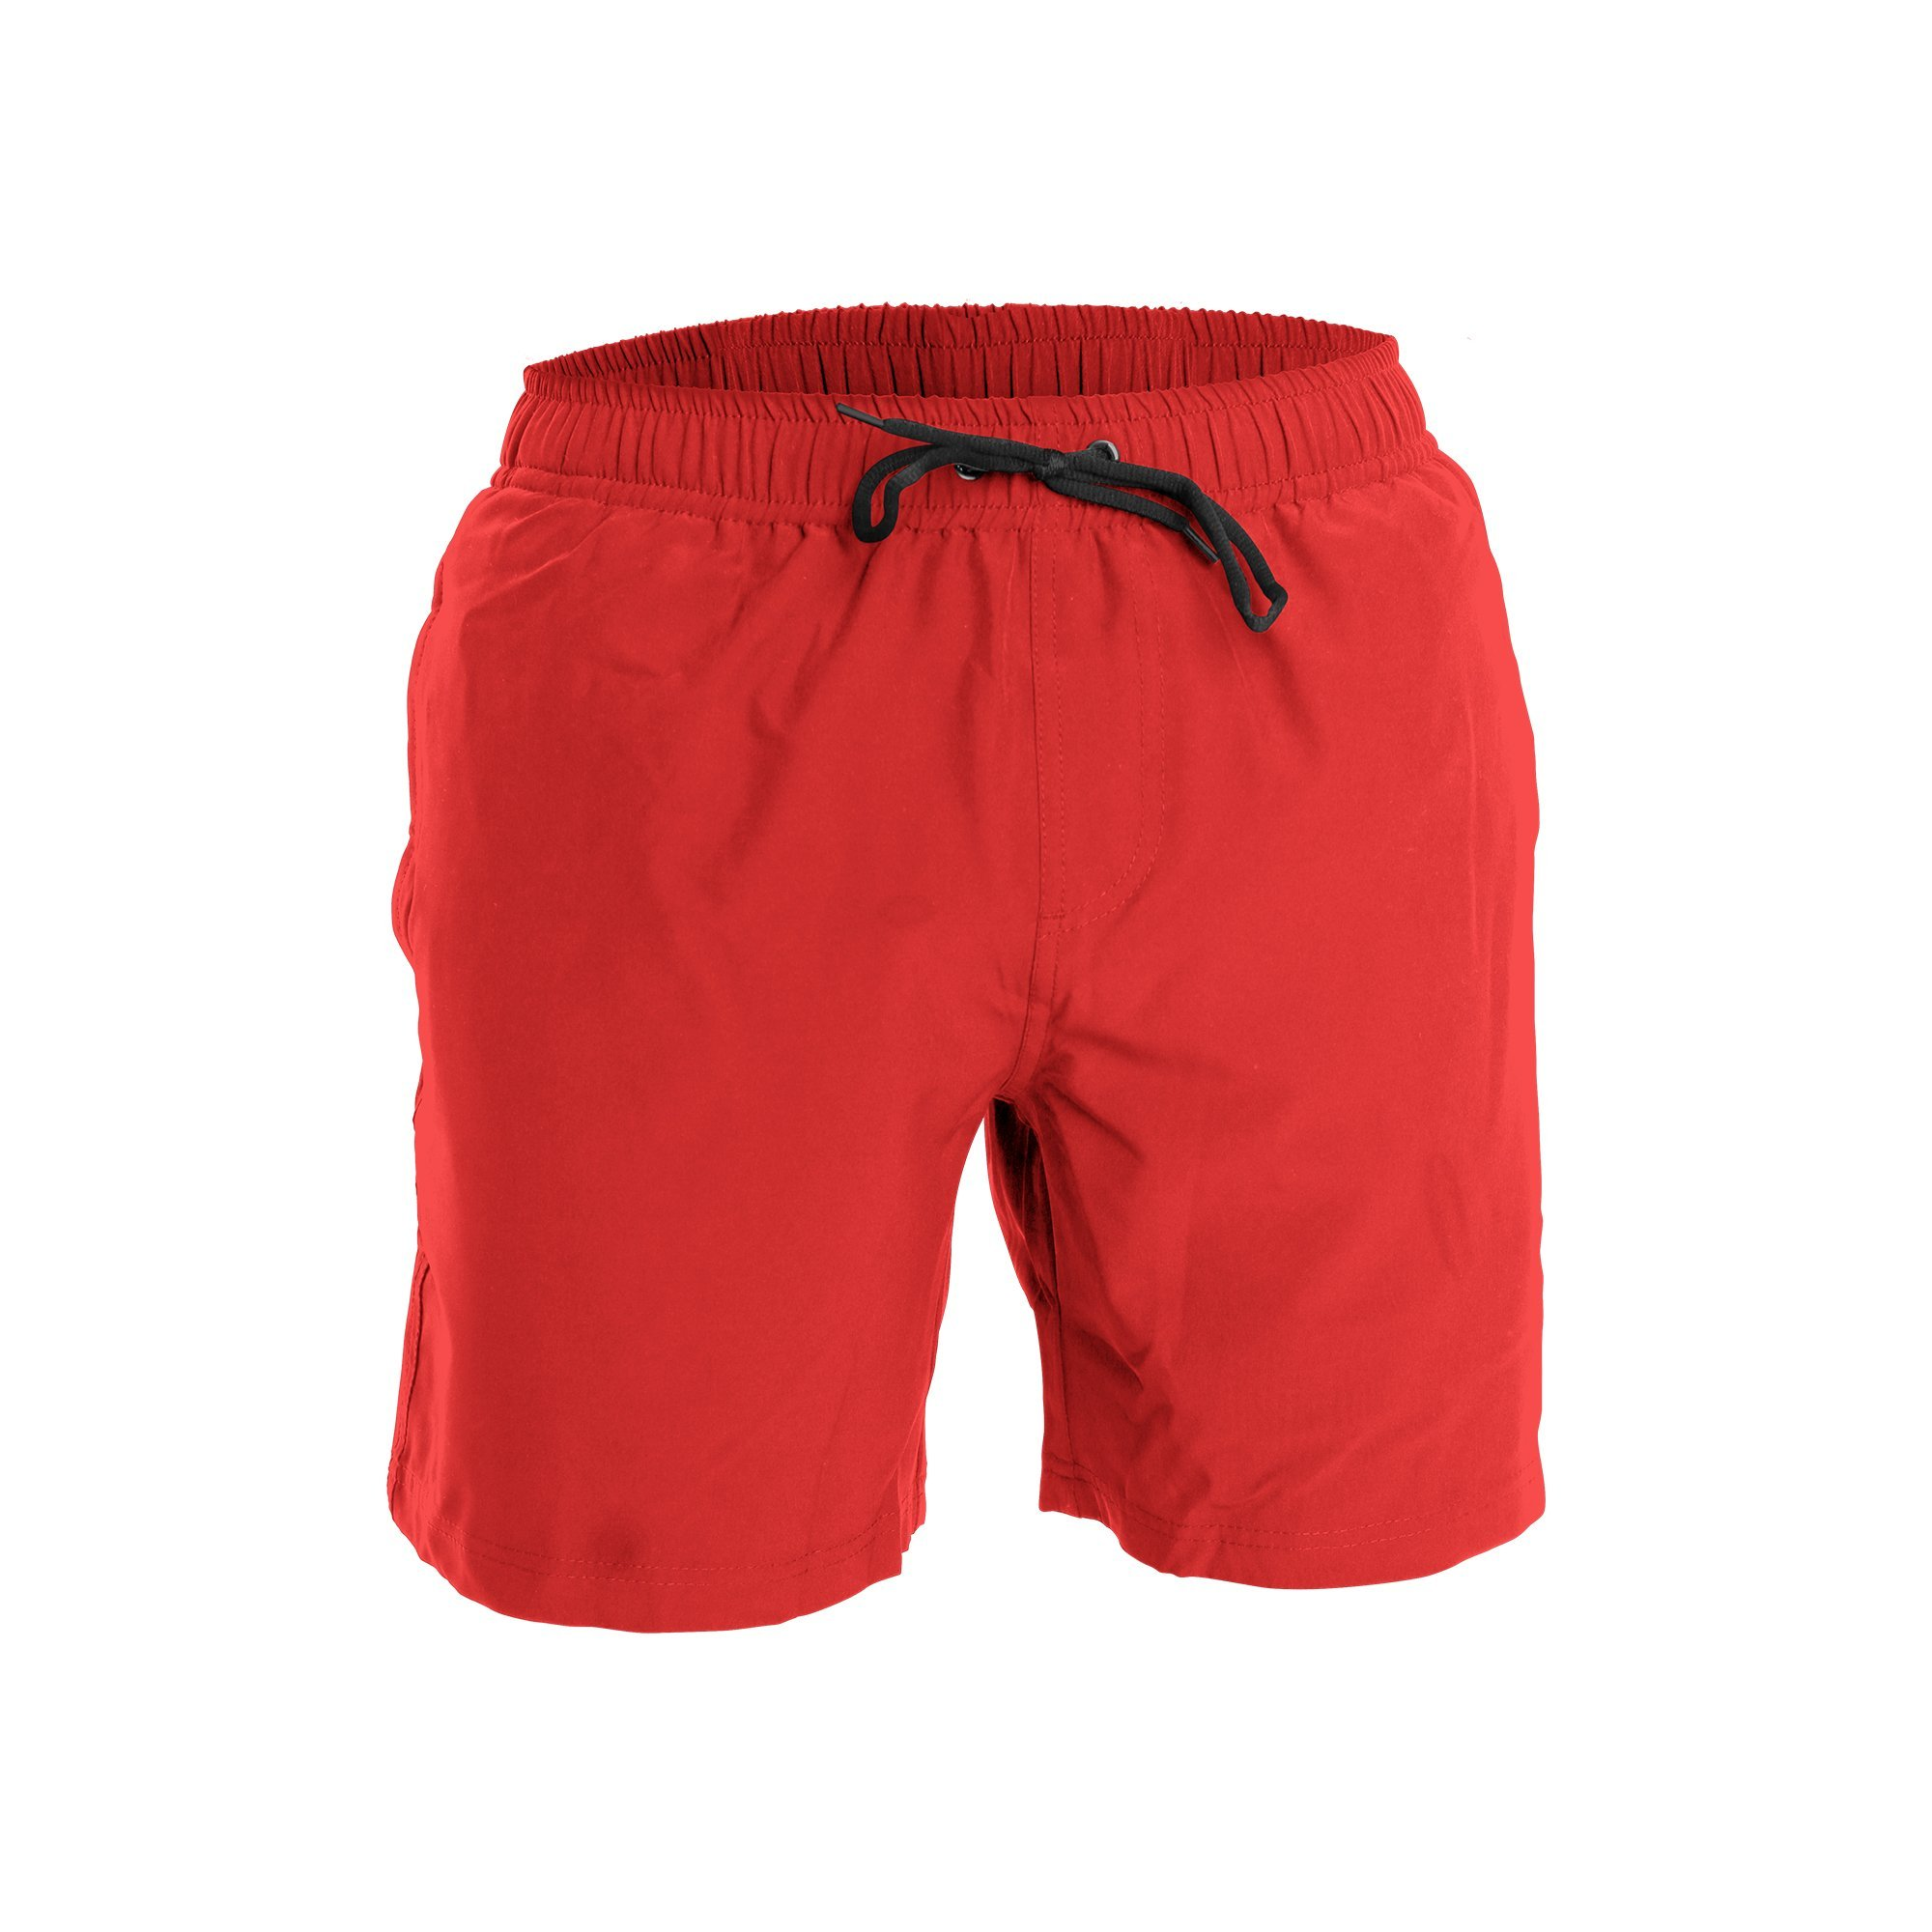 ea9133697f Get Quotations · Men's Swim Trunks and Workout Shorts – Perfect Swimsuit  Athletic Shorts for The Beach, Lifting